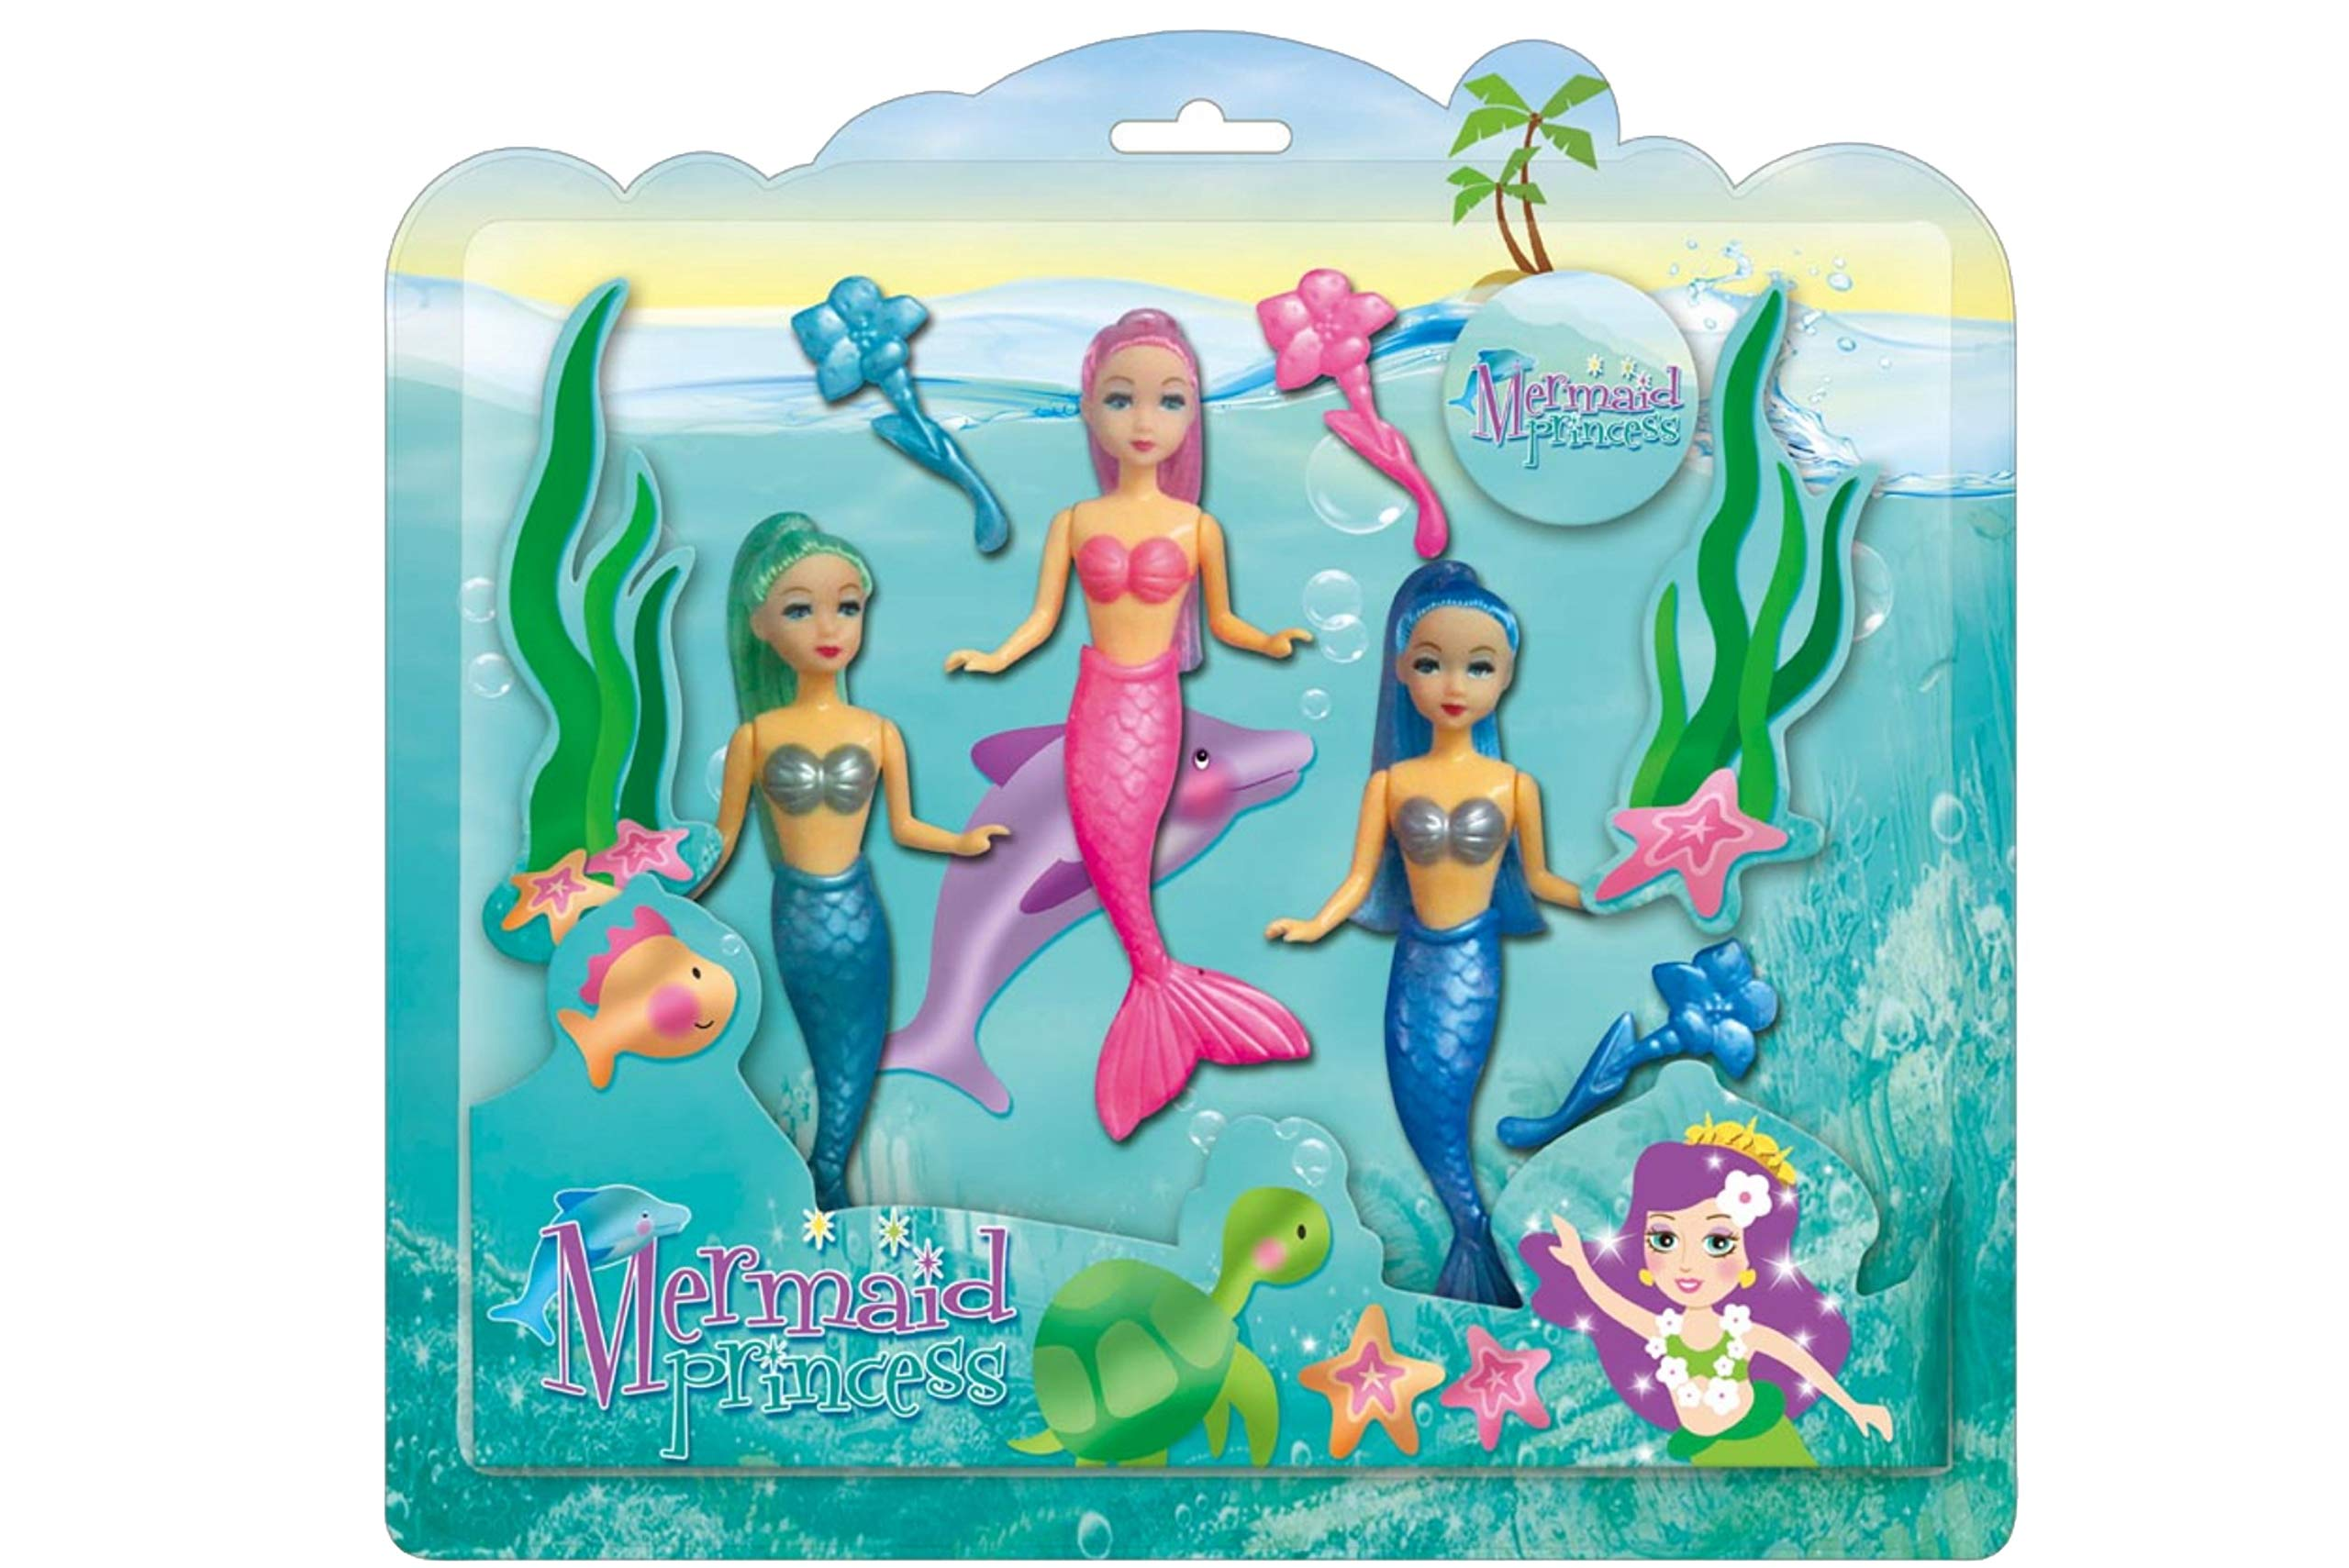 KandyToys Mermaid Princess Dolls (3 in a pack)